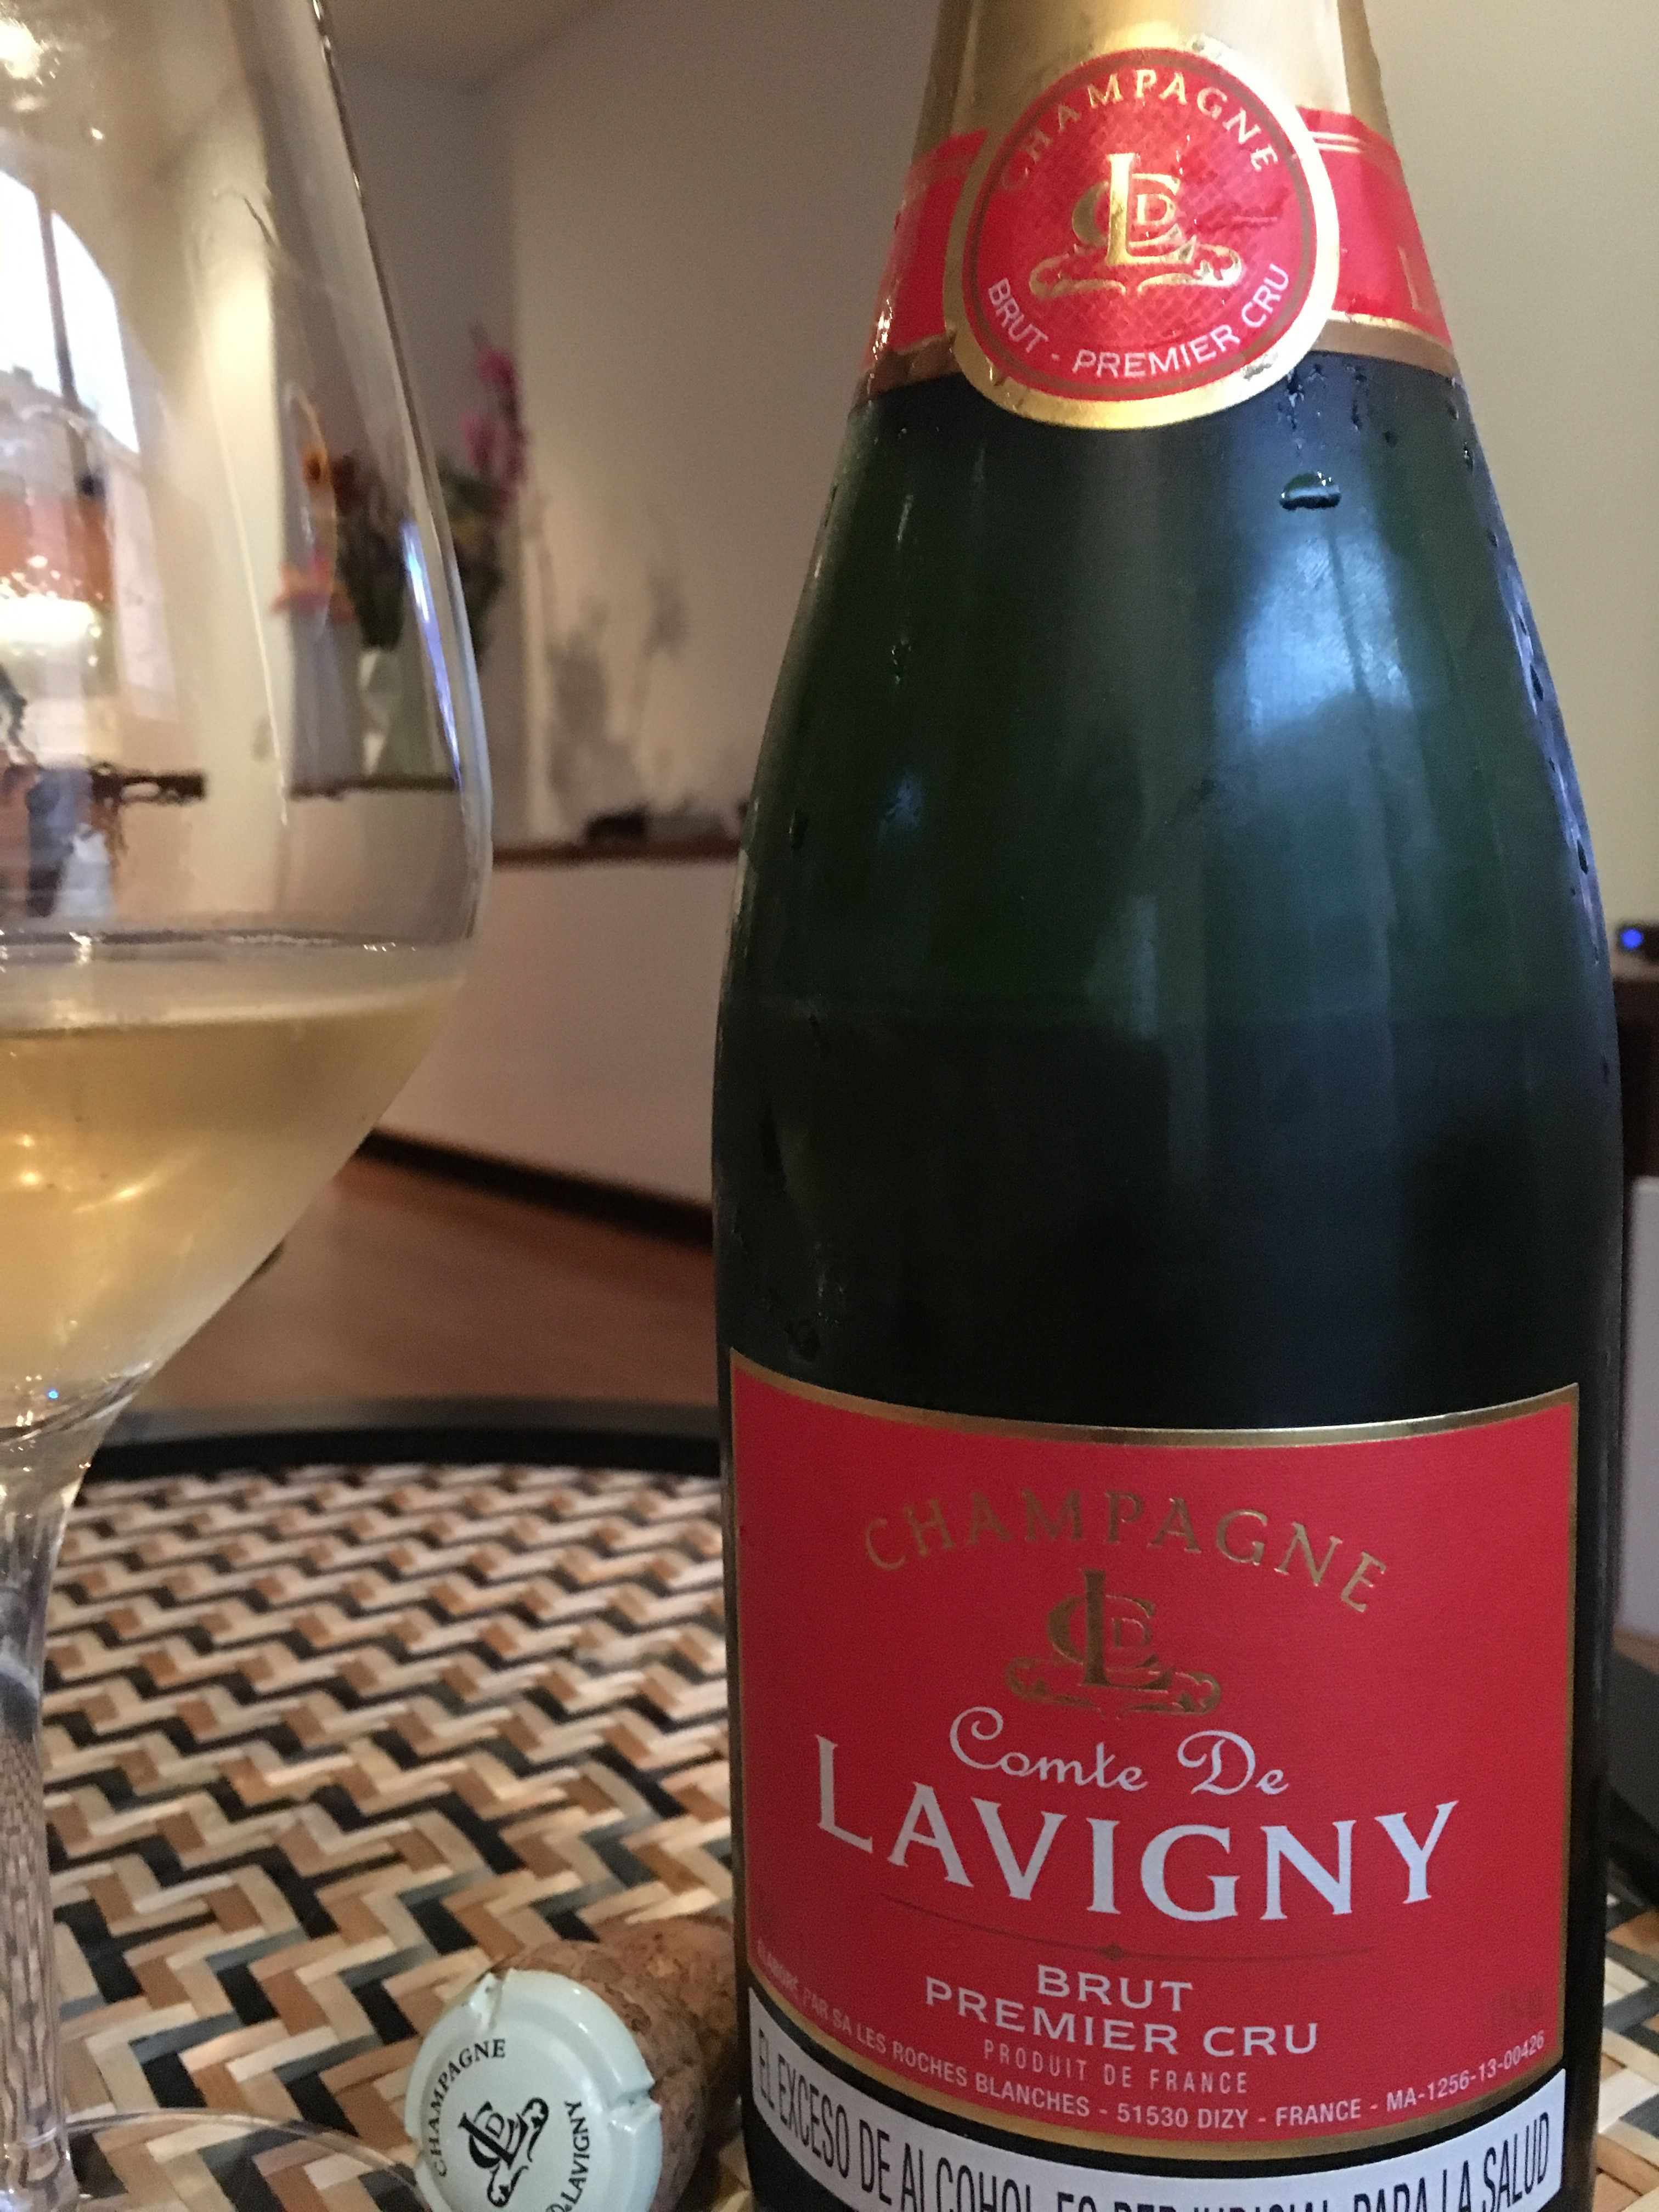 Comte De Lavigny Premier Cru Brut Maybe A Bit Short On The Palate But Considering Its Value This Champagne Is Worth The Buy Wine Bottle Wines Palate